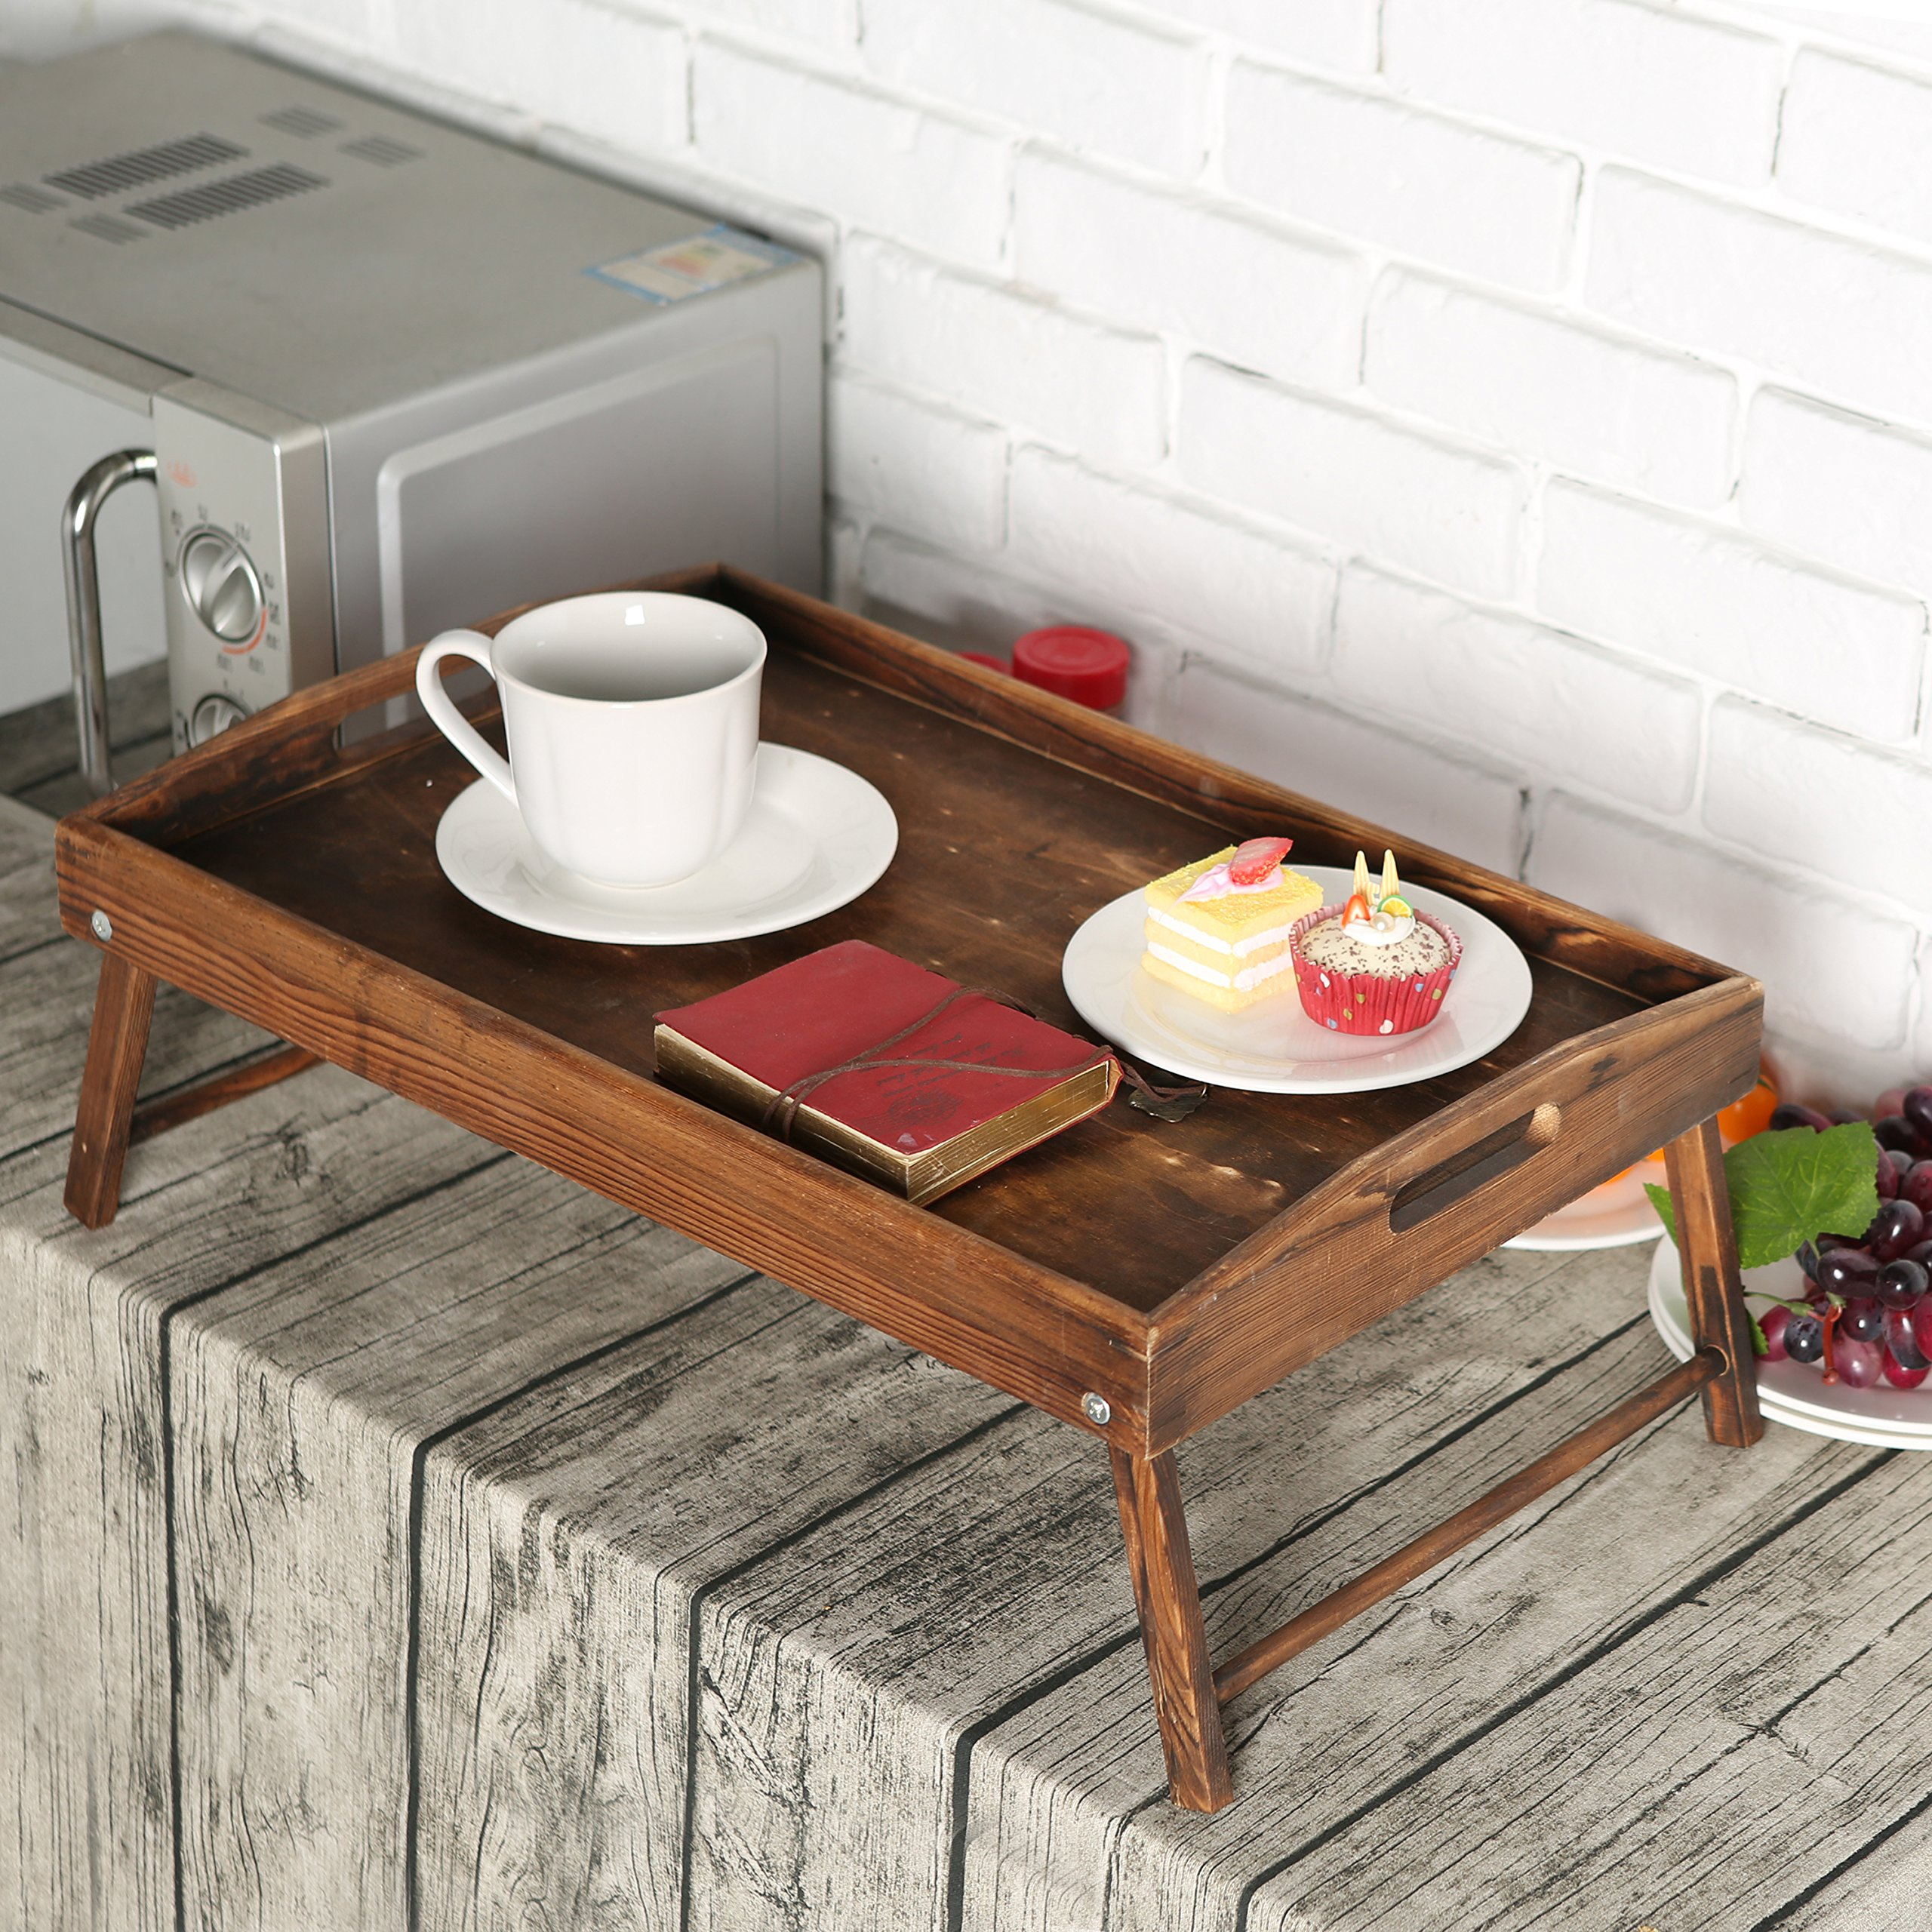 Country Rustic Torched Wood Food Serving Tray, Breakfast in Bed Table with Folding Legs by MyGift (Image #2)